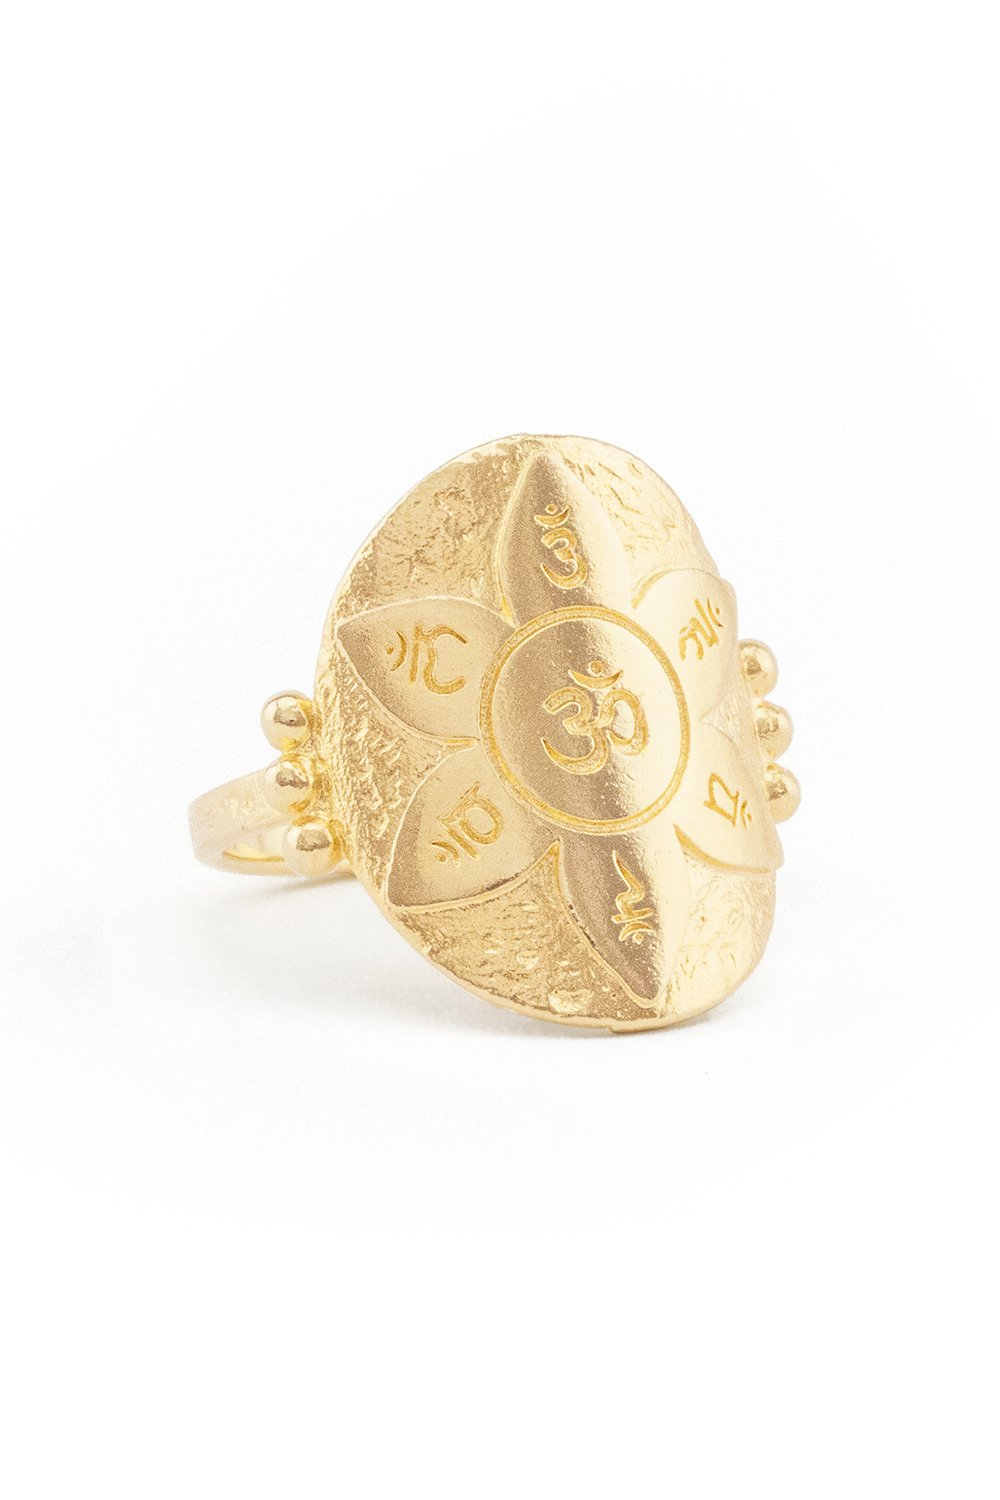 BY CHARLOTTE HARMONY RING GOLD